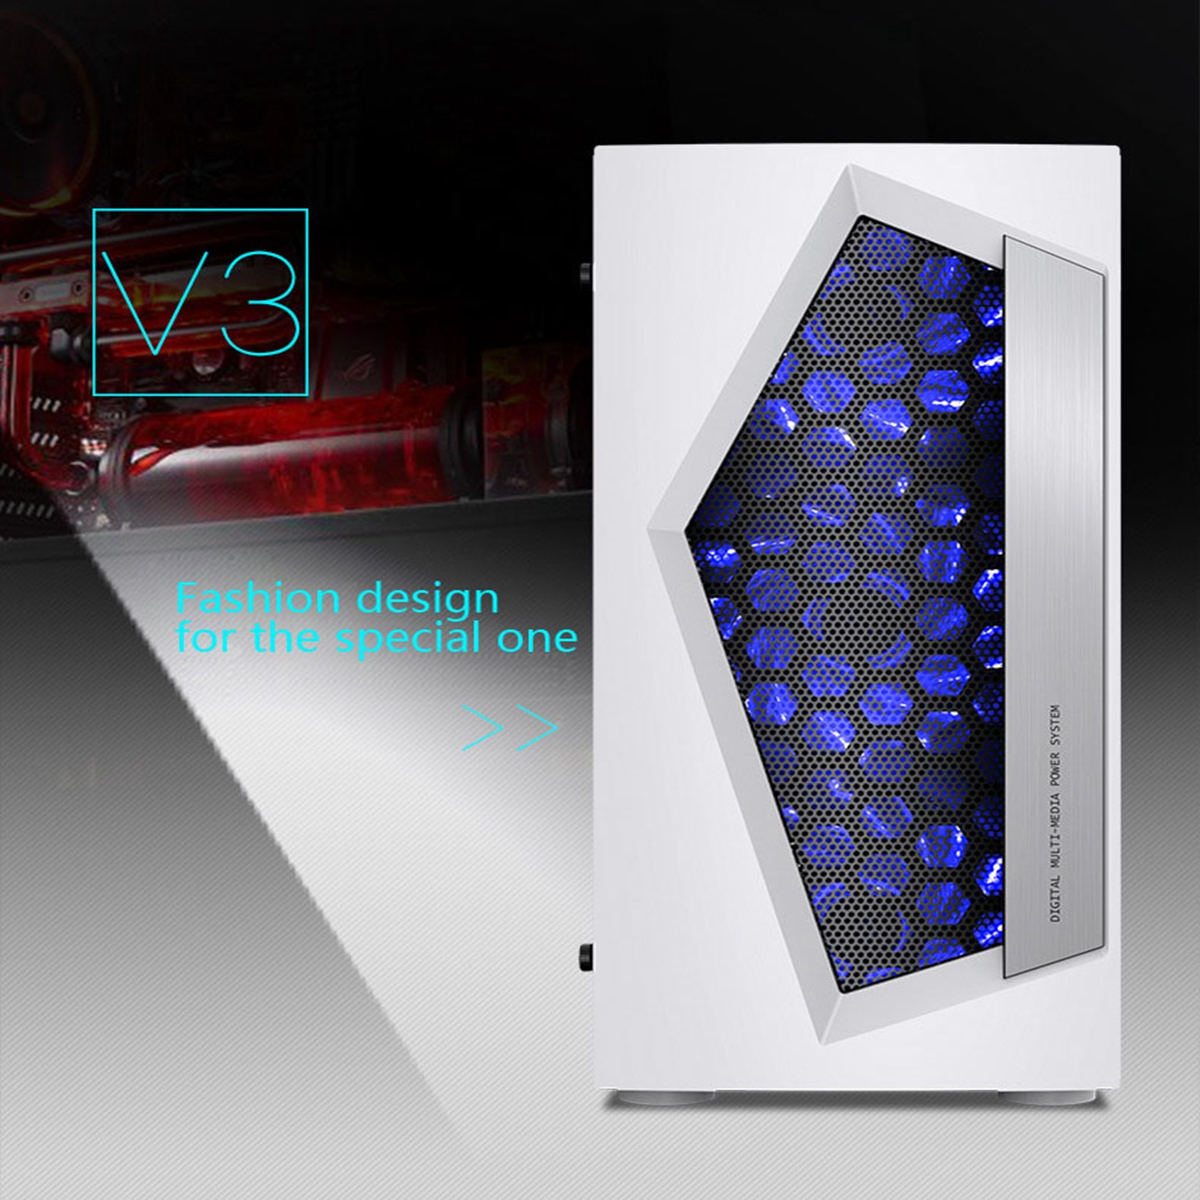 купить V3 ATX Computer Gaming PC Case 8 Fan Ports USB3.0 For M-ATX/Mini ITX Motherboard Mid Tower Water Cooling Enclosure по цене 5579.19 рублей